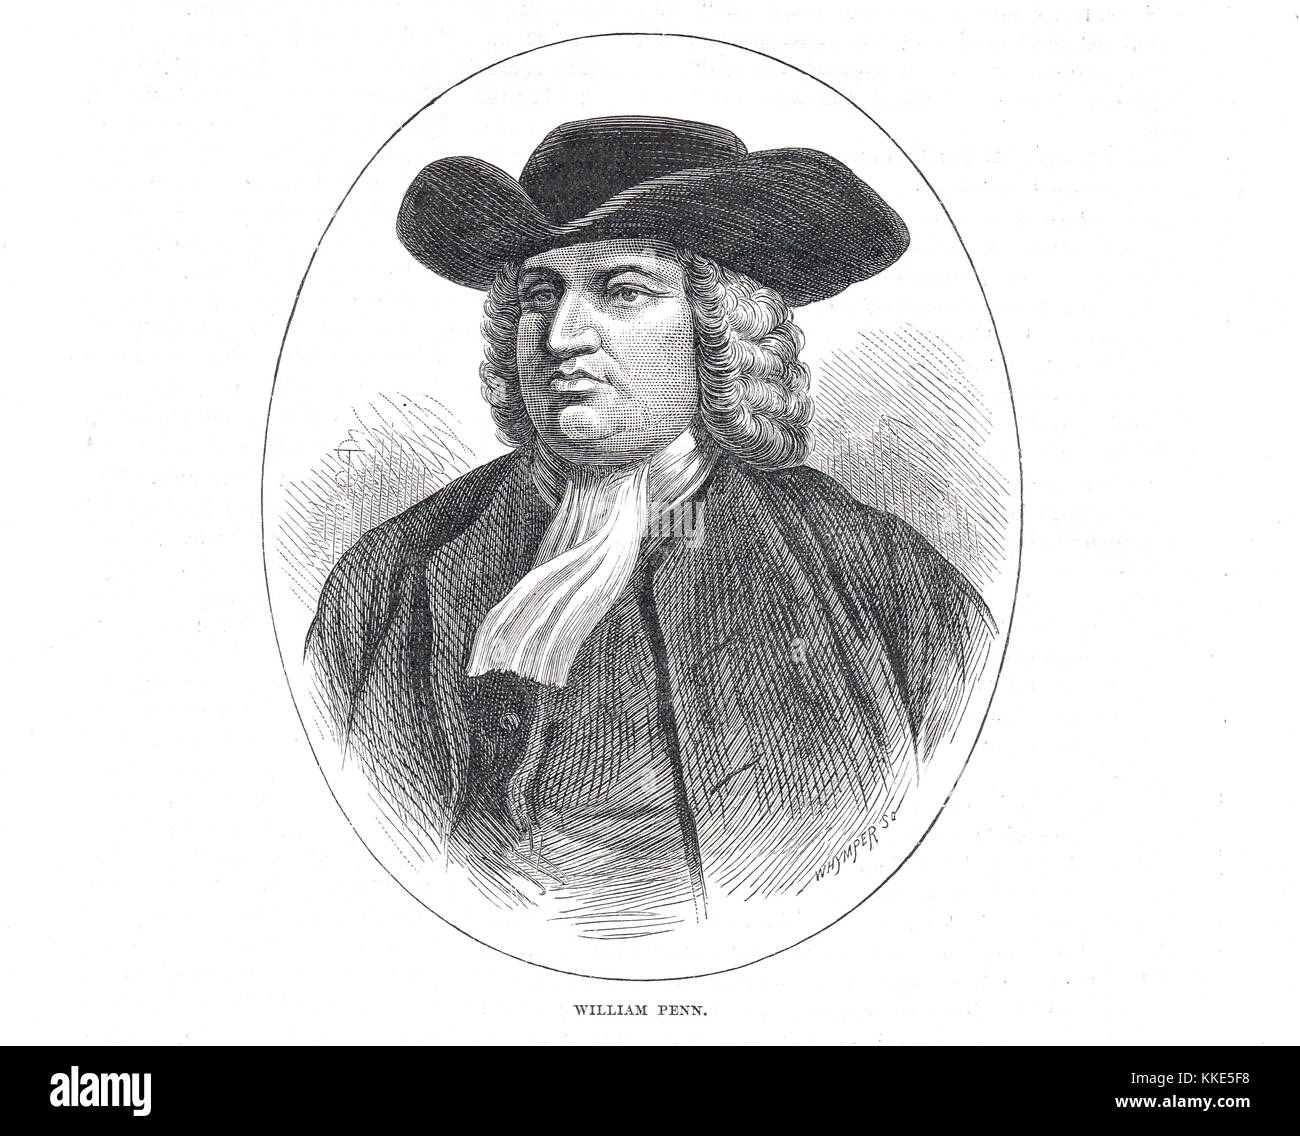 William Penn, founder of the State of Pennsylvania Stock Photo